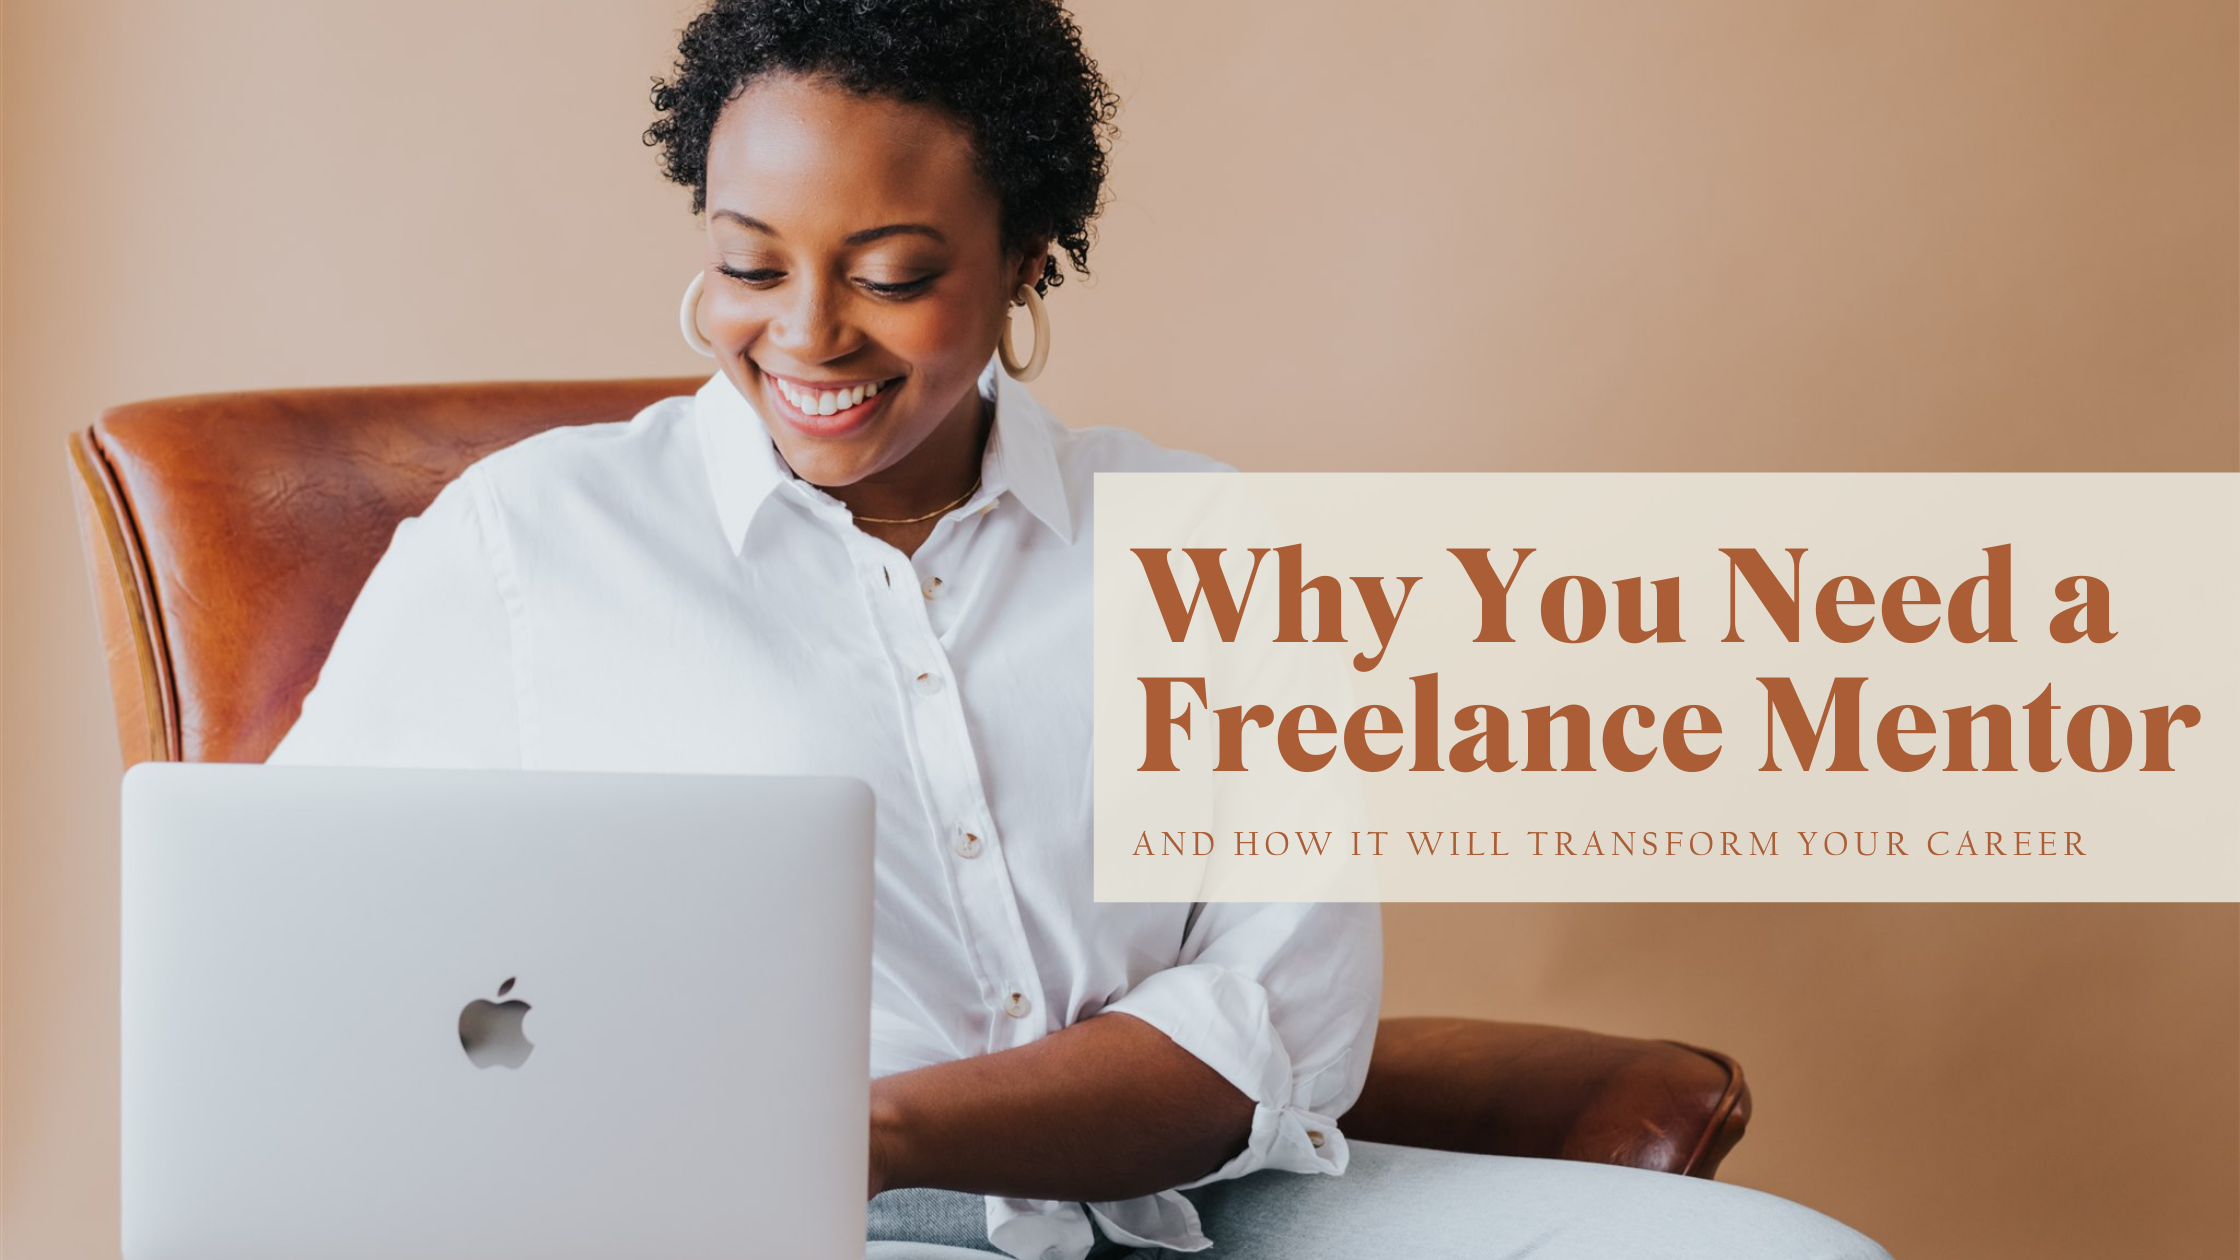 Why you need a freelance mentor and how it will transform your career